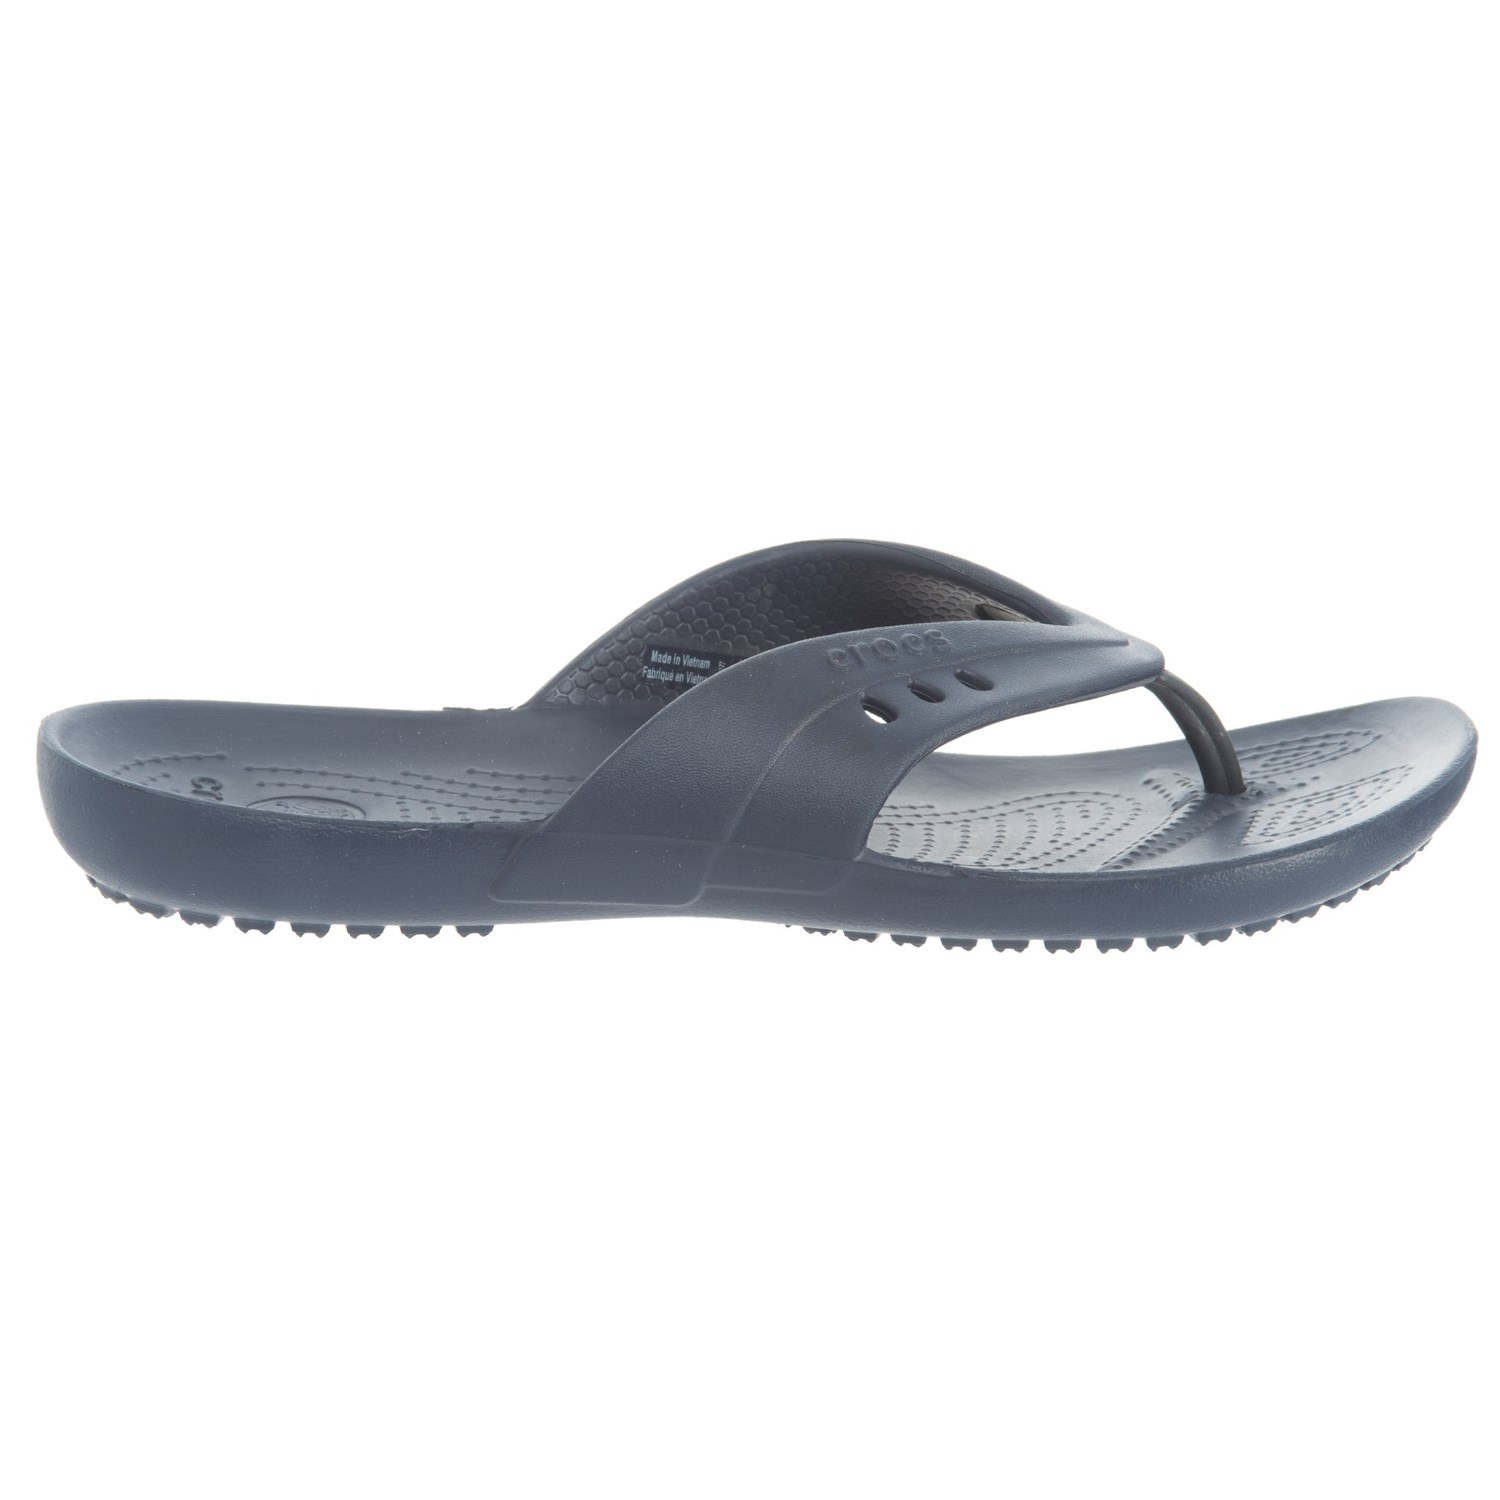 d94d98d5b498 Crocs Kadee Flip-Flops (For Women) - Save 35%